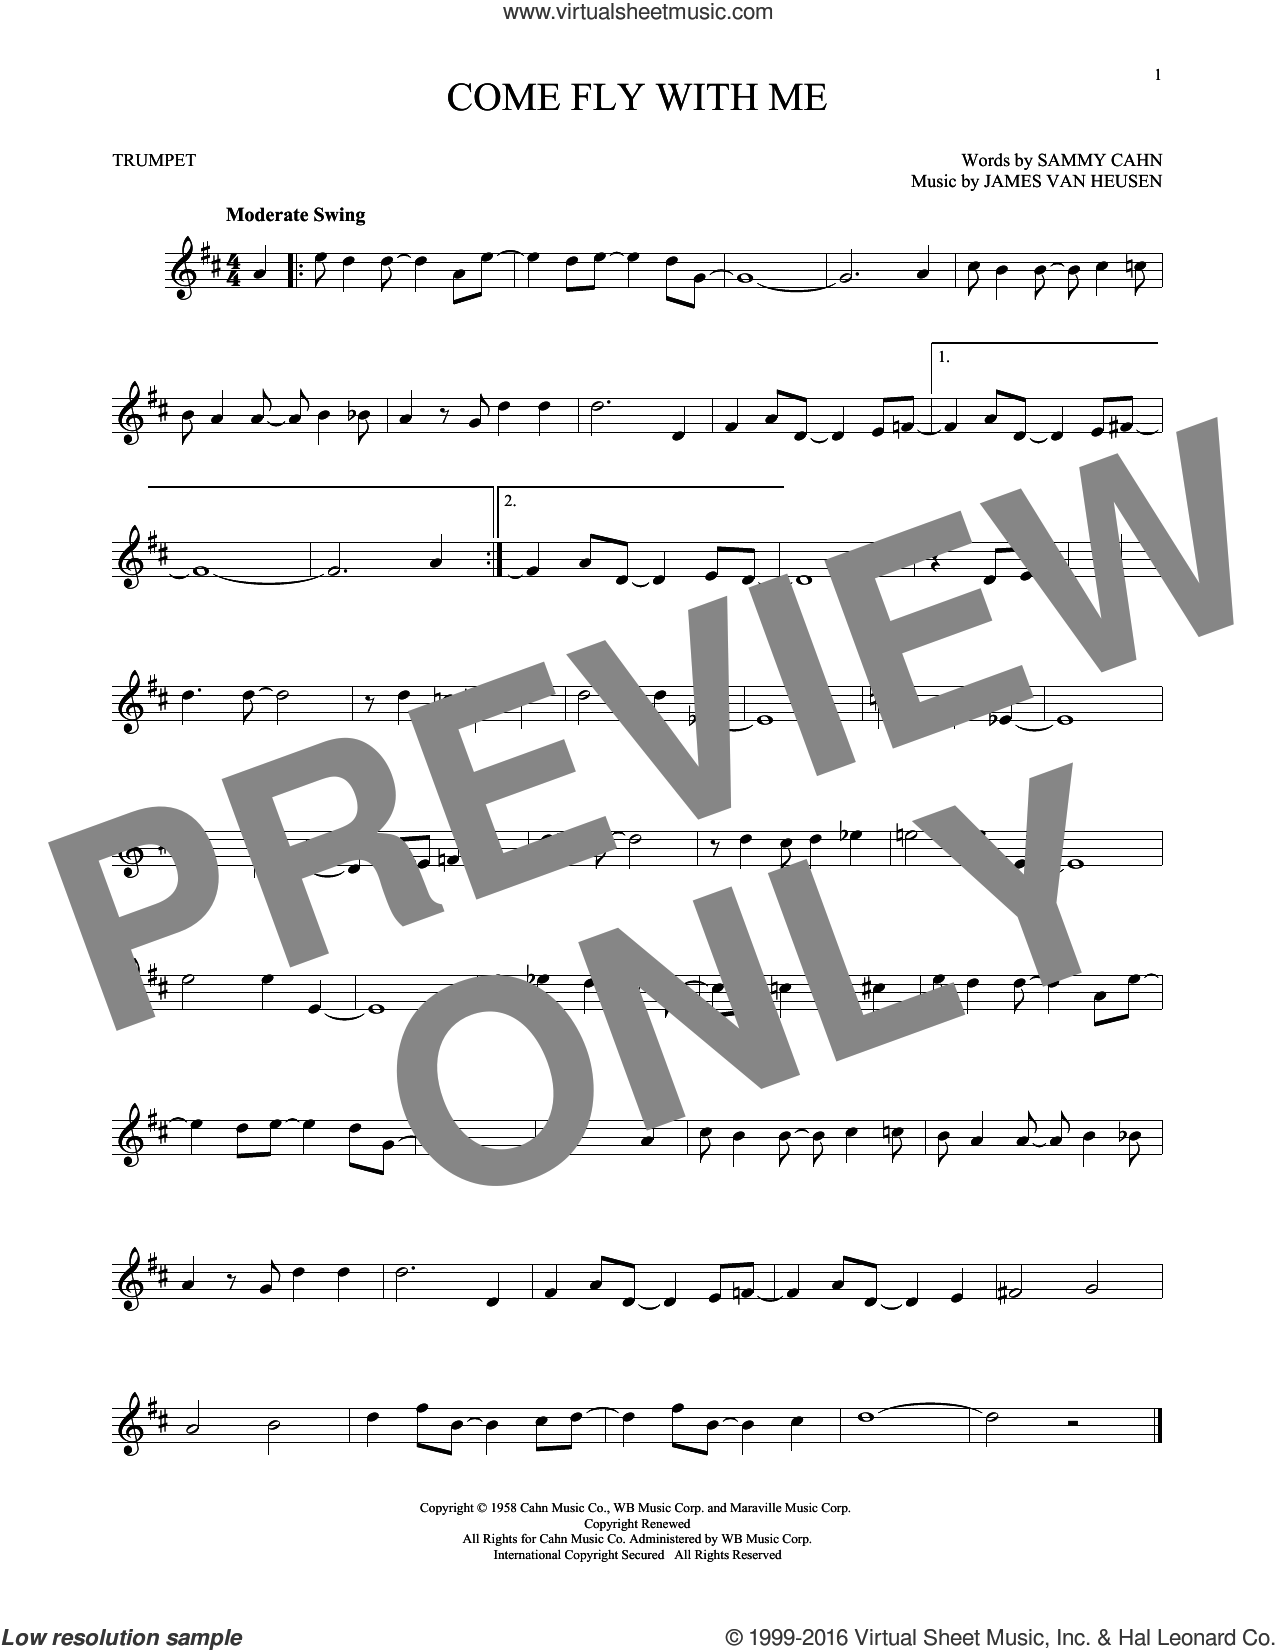 Come Fly With Me sheet music for trumpet solo by Sammy Cahn, Jimmy van Heusen and Sammy Cahn & James Van Heusen, intermediate skill level